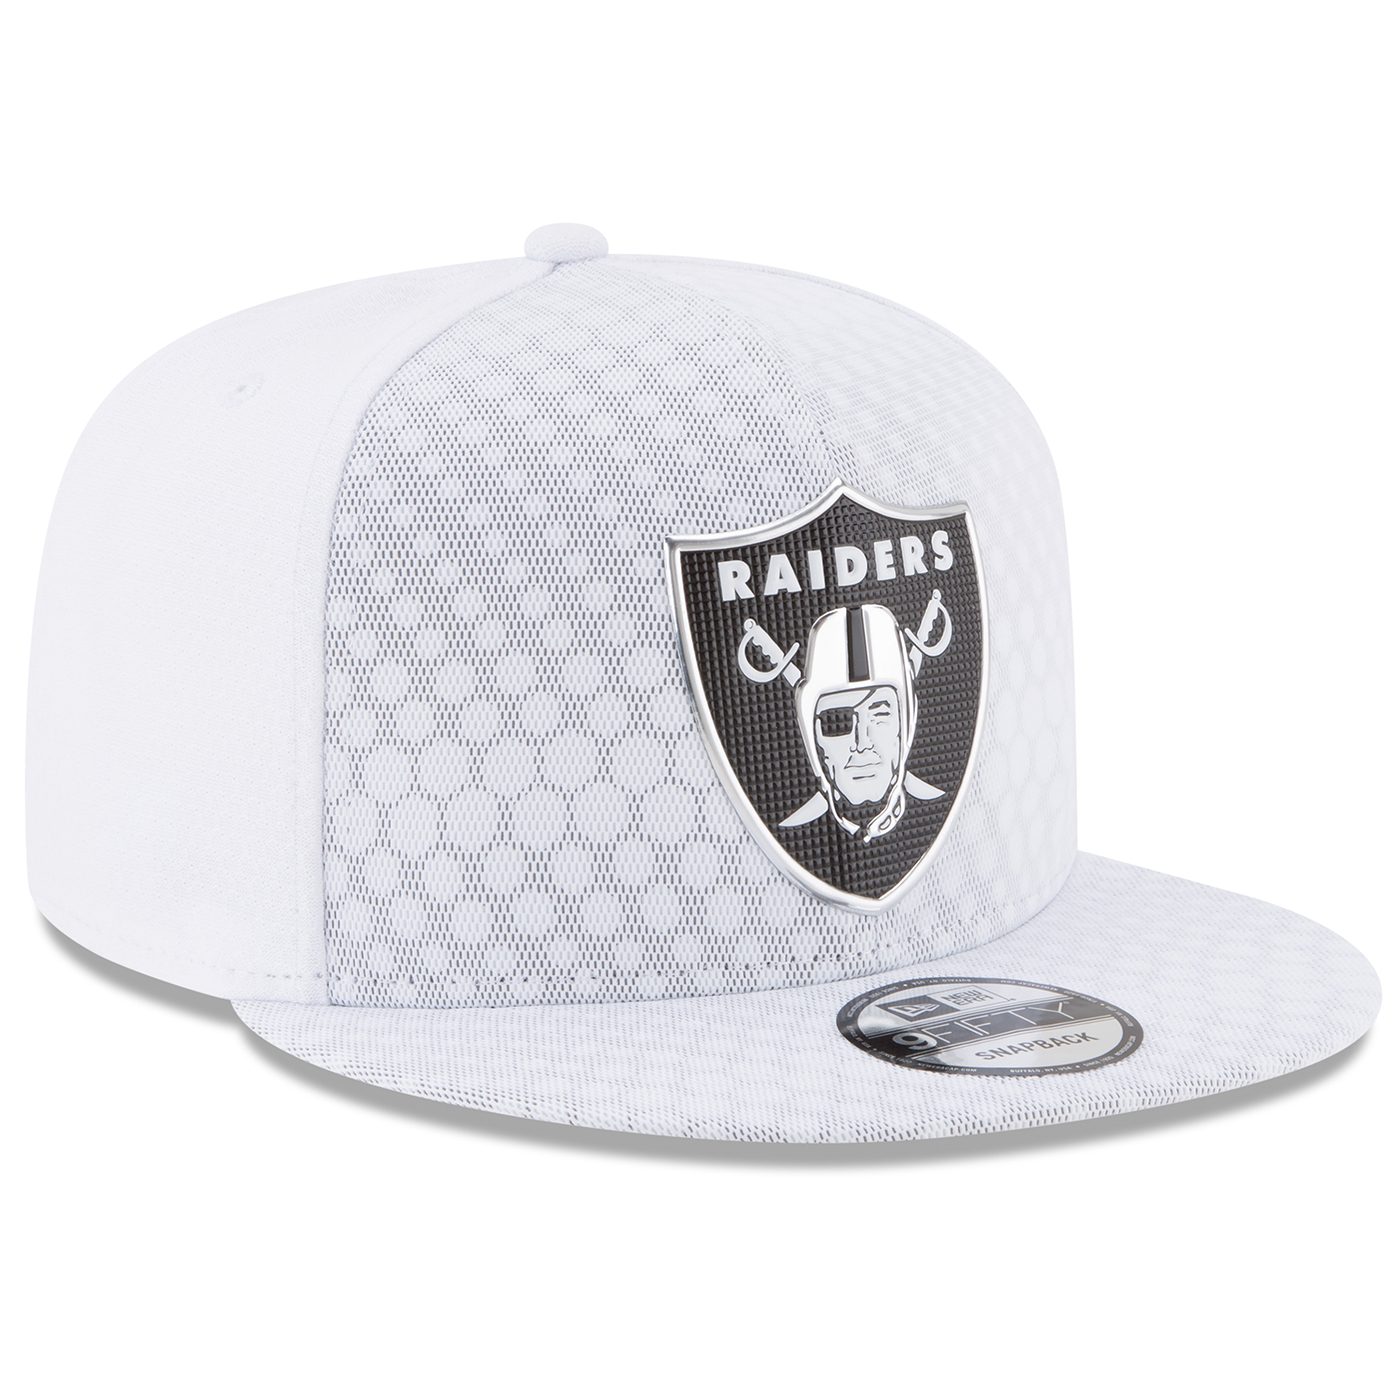 wholesale dealer dfa33 a28ea Raiders New Era 9Fifty Official 2017 Sideline Color Rush Cap